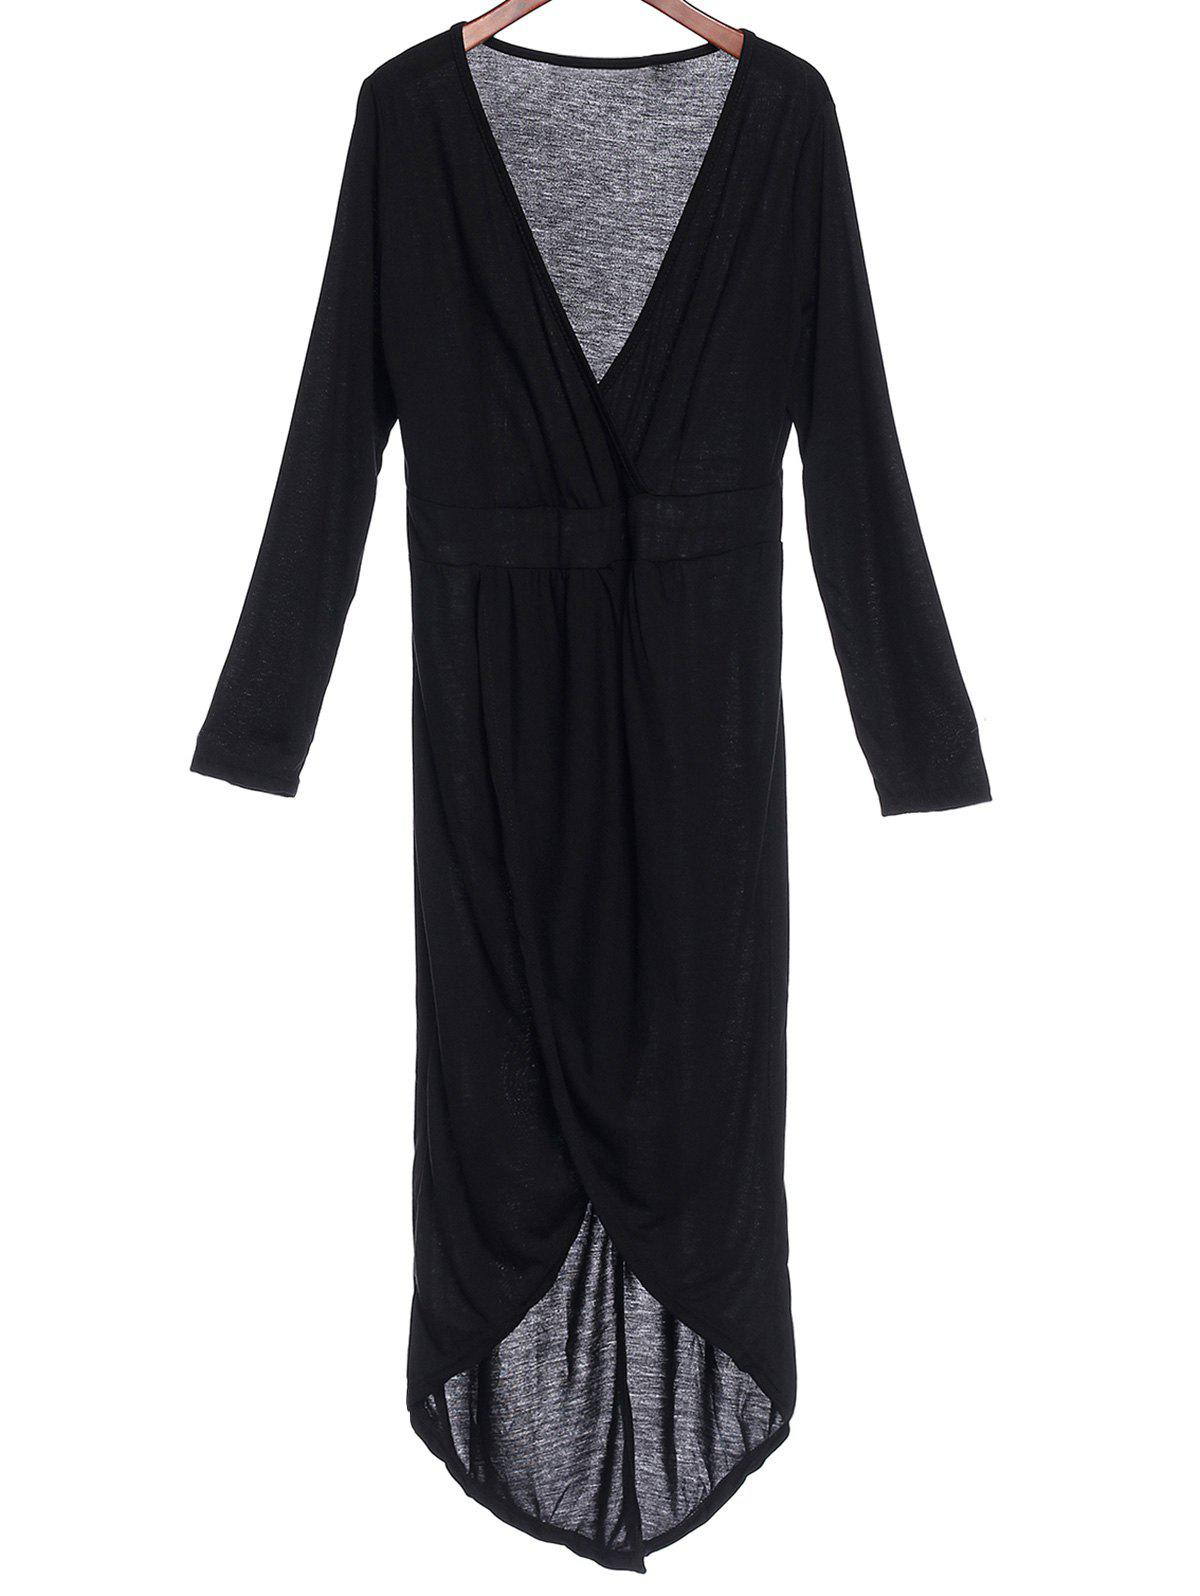 Sexy Plunging Neck Solid Color High-Low Hem Plus Size Long Sleeve Women's Dress plunging neck high low split sleeve blouse